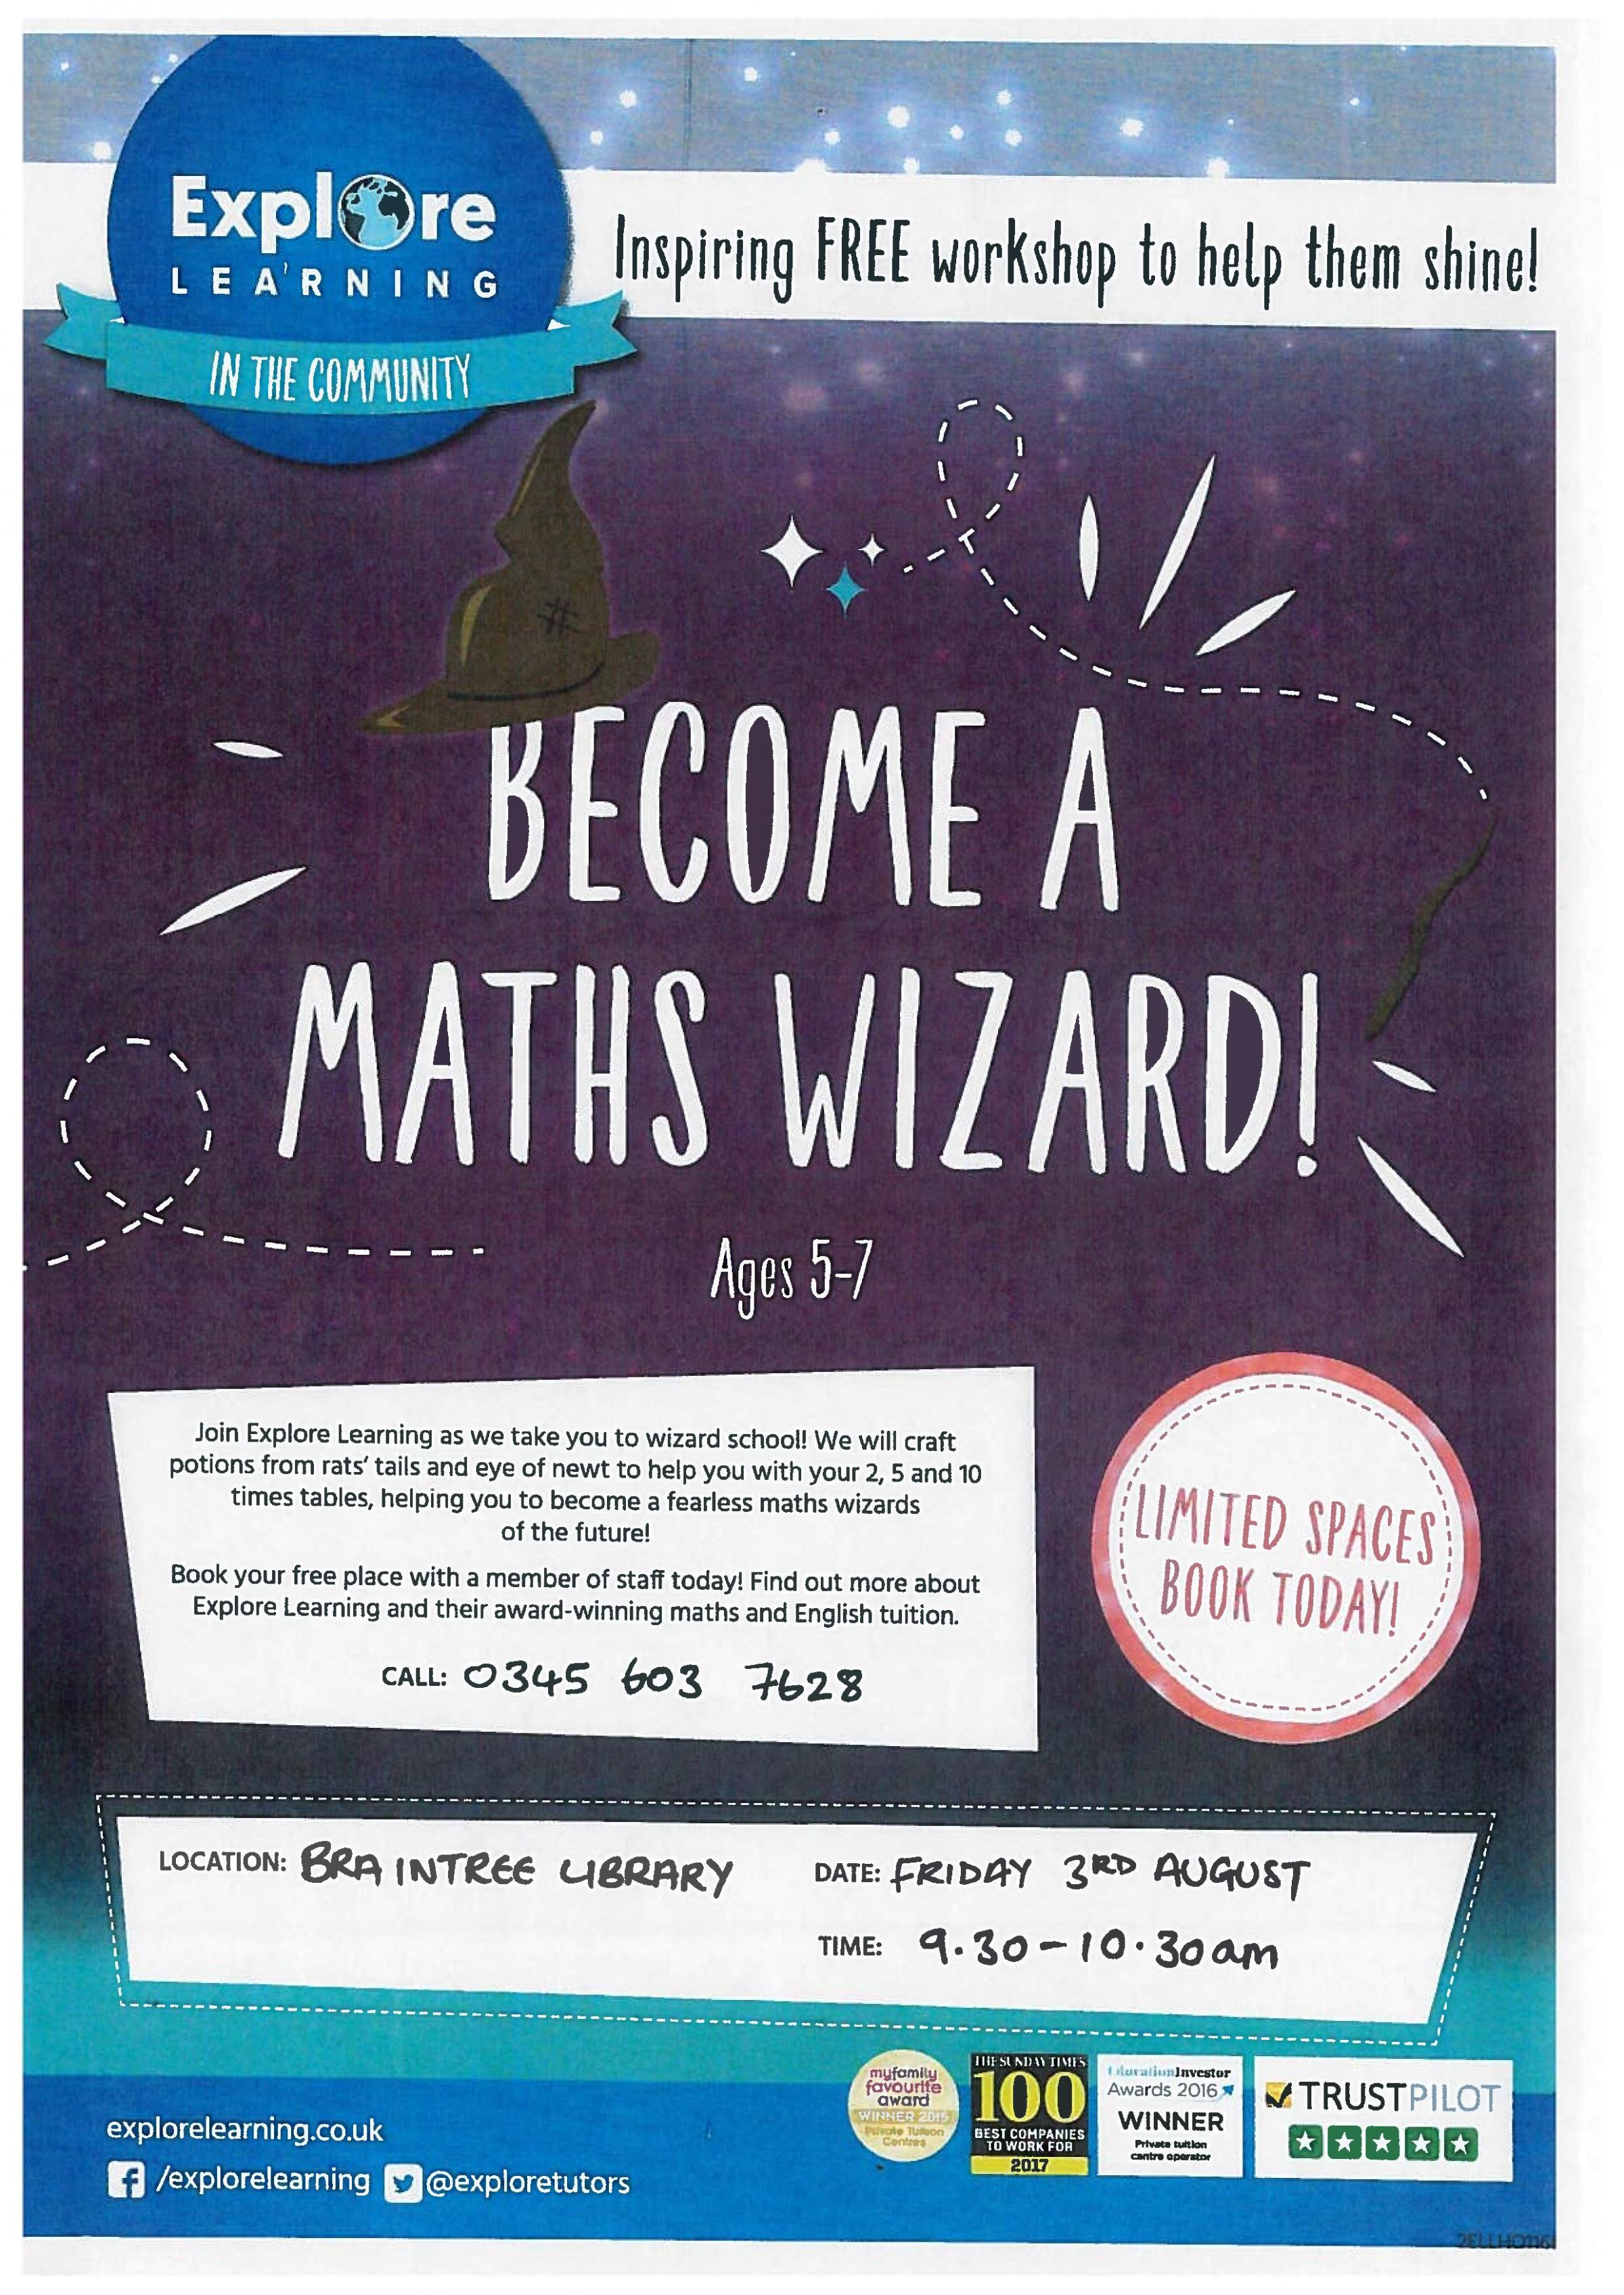 Explore Learning Creative Workshop - Become A Maths Wizard